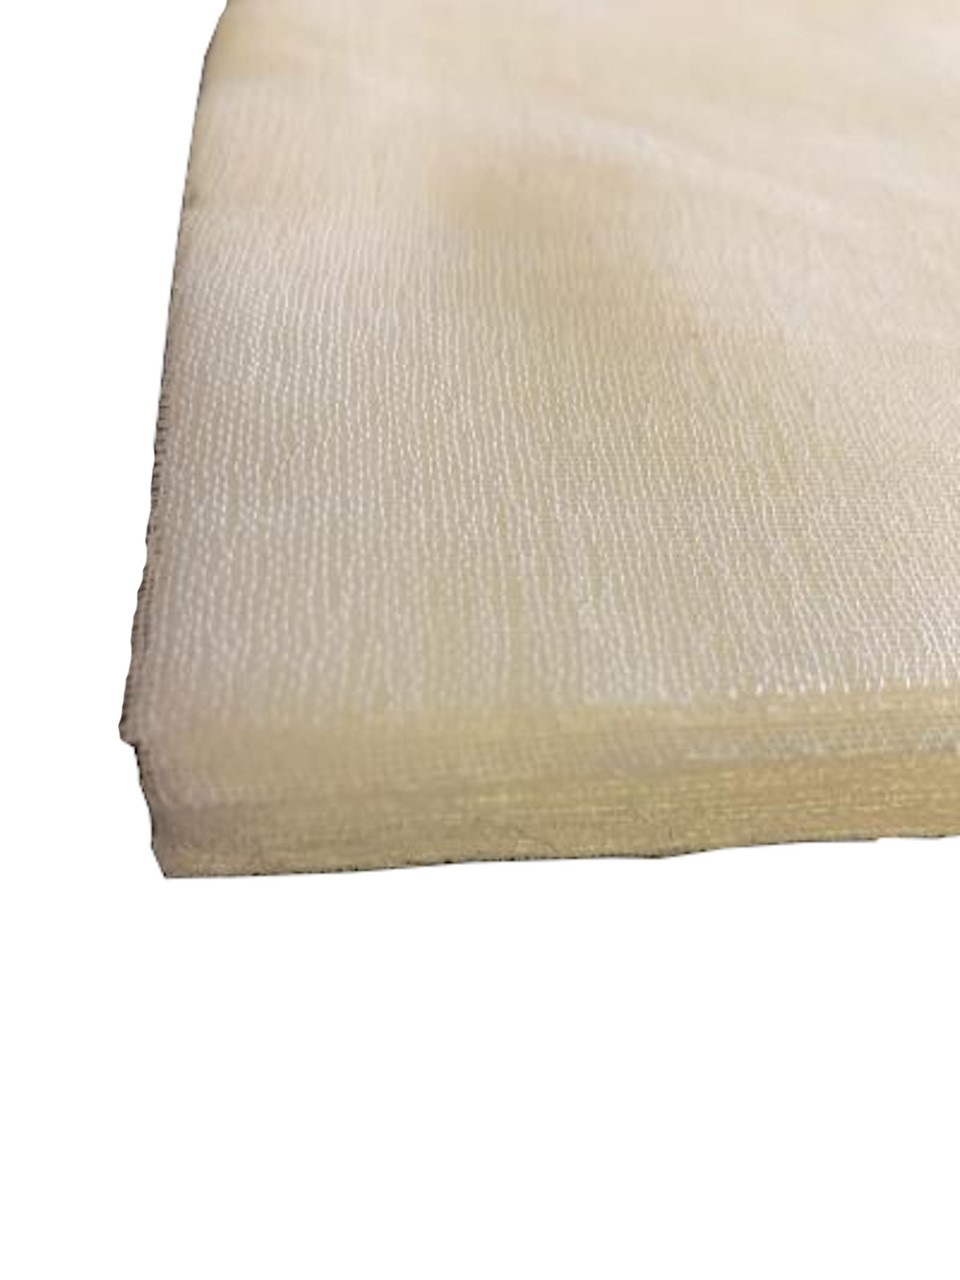 "Stacked Grade 90 Cheesecloth 36"" x 24"" 75 Pcs - Bleached"